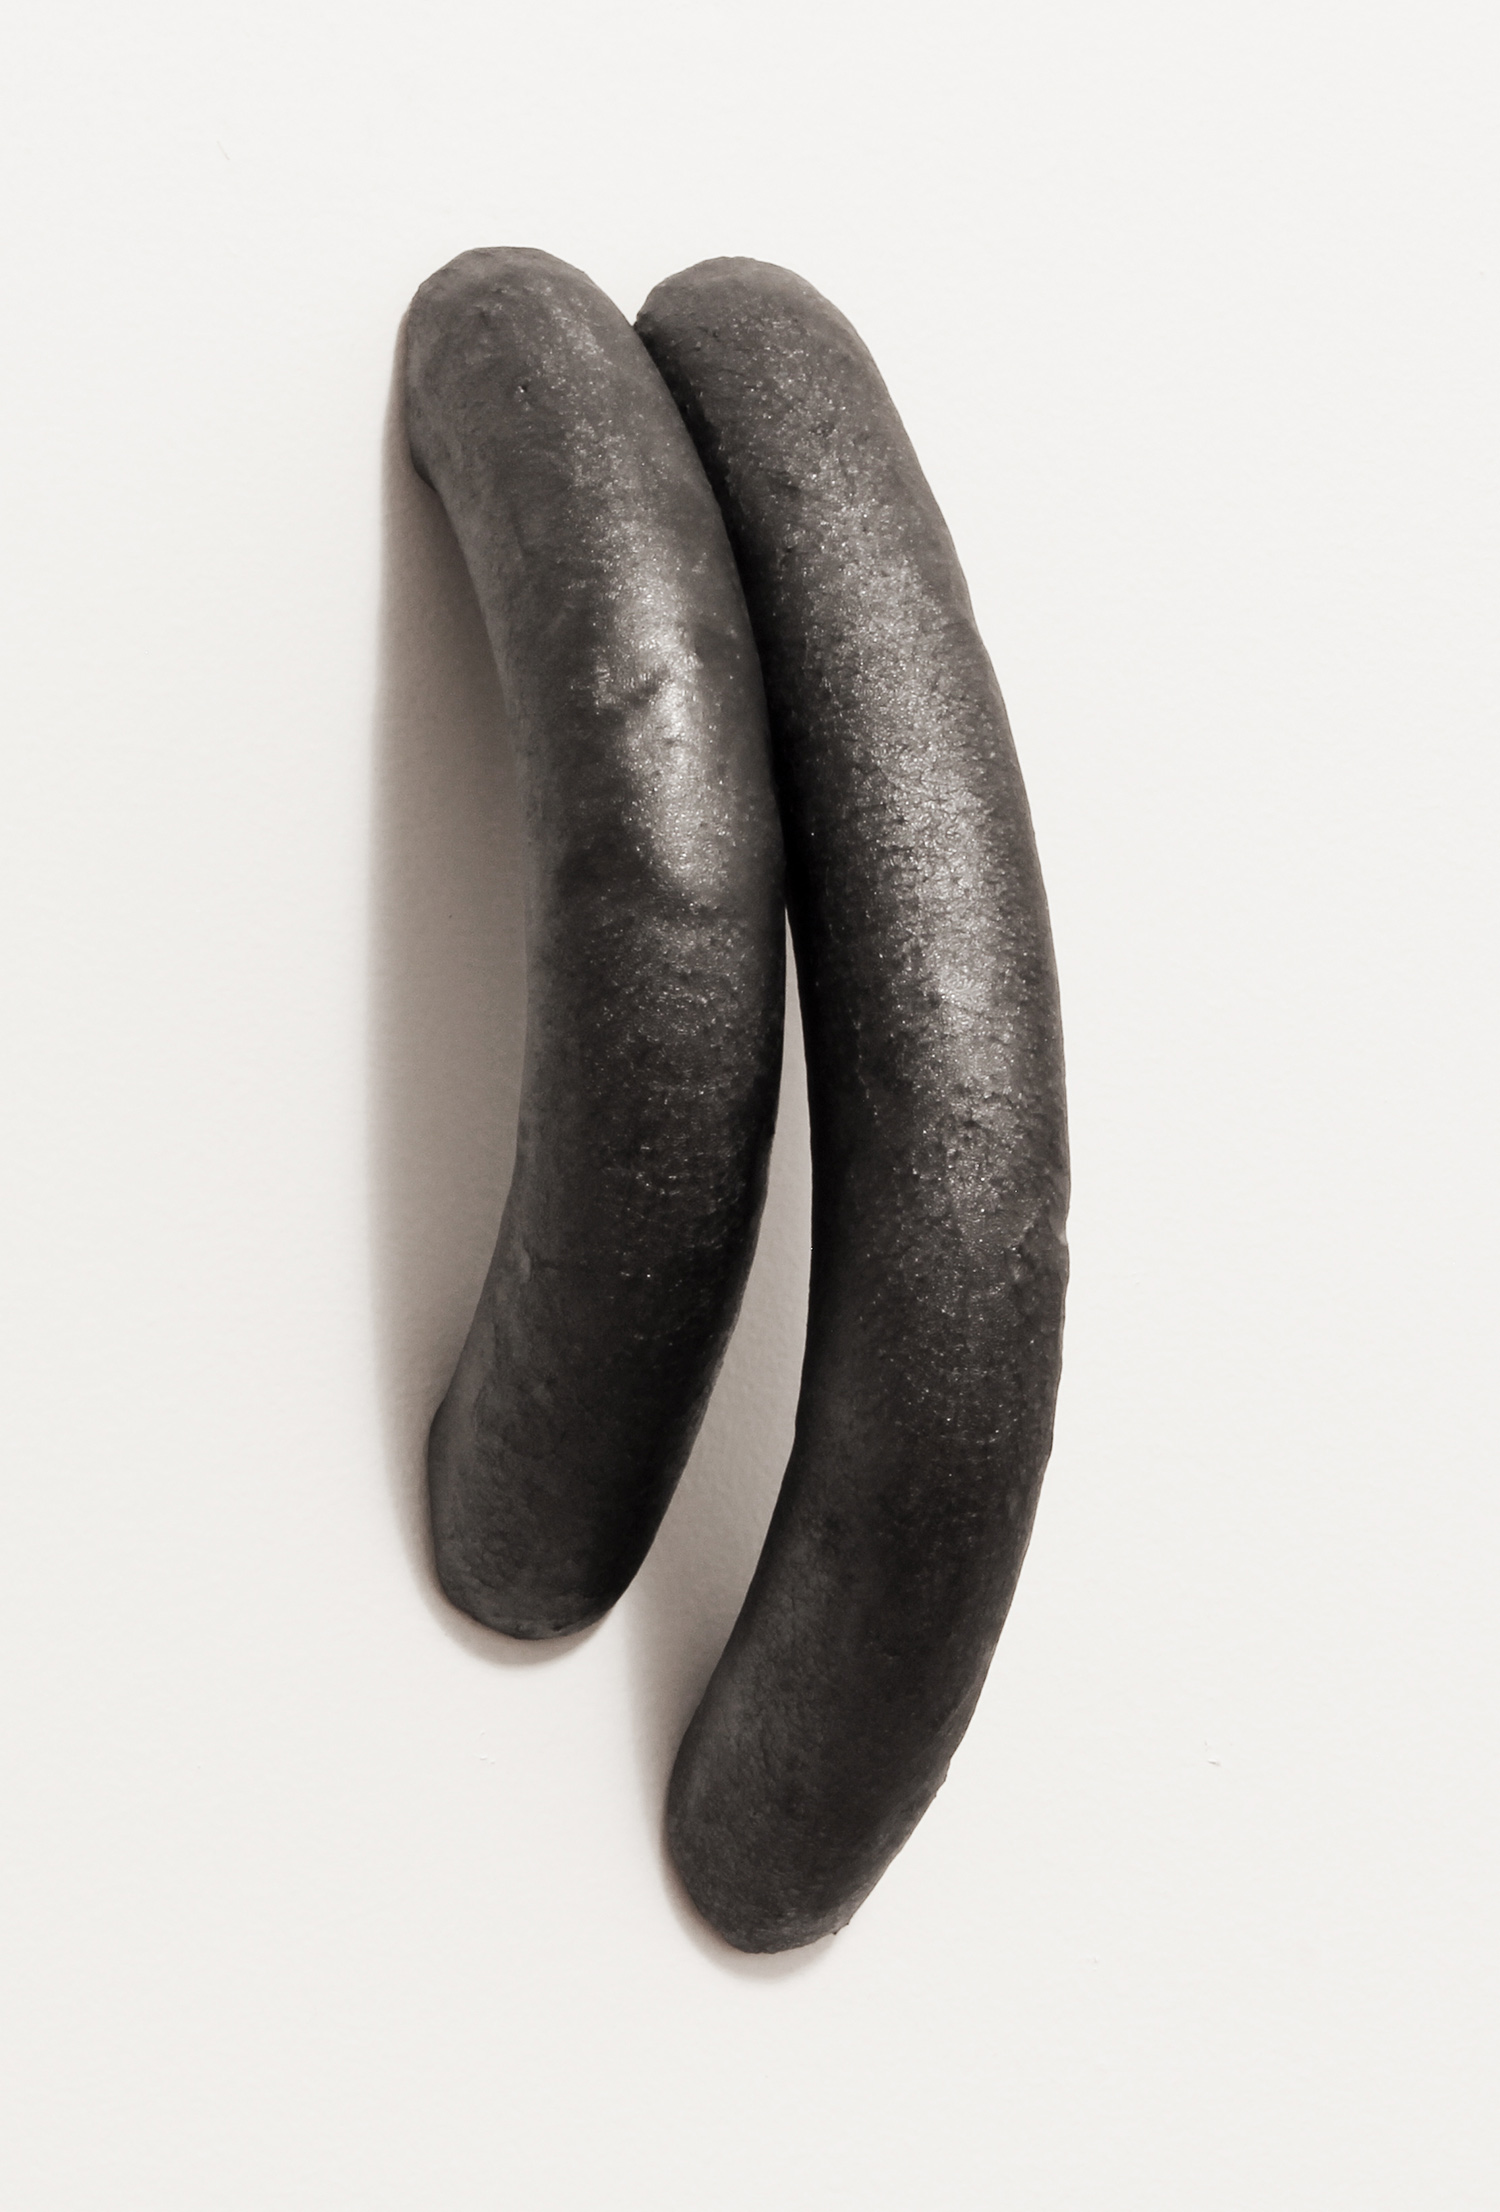 It Takes Two   2015 glazed ceramic 3.5 x 11.5 x 4 inches